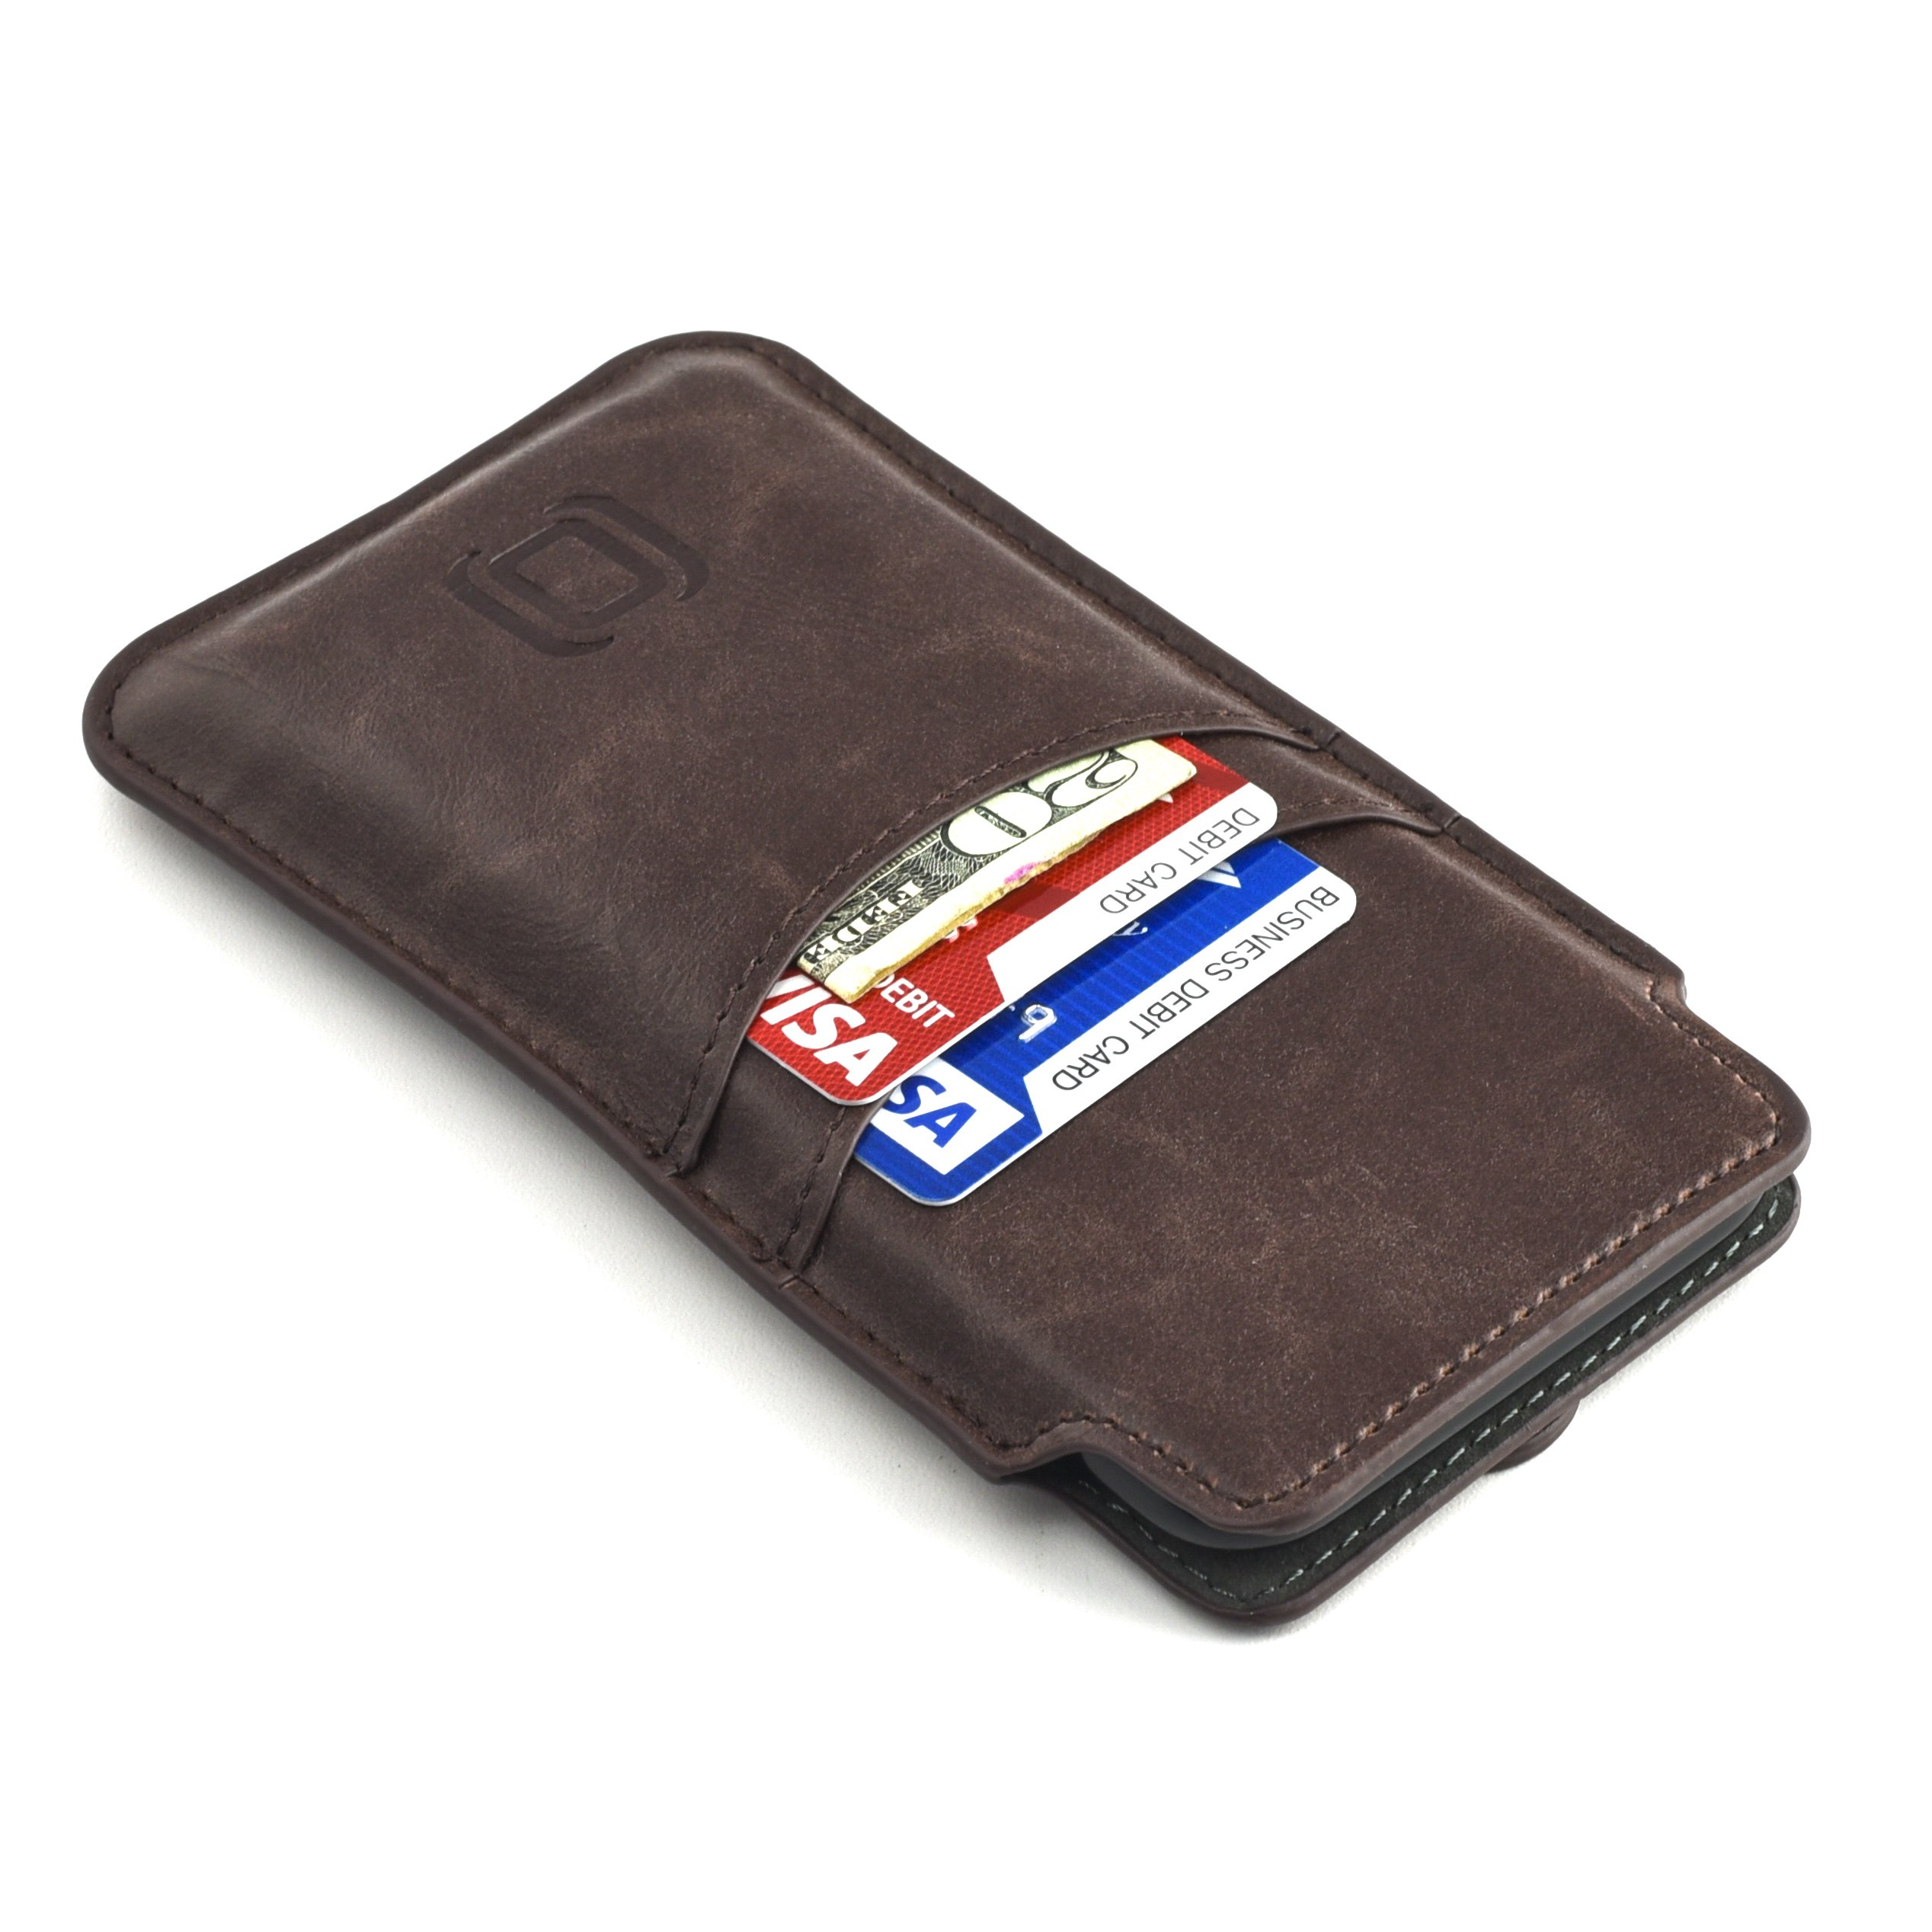 Dockem Provincial Wallet Sleeve for iPhone X; Ultra Slim Vintage Synthetic Leather Cover with 2 Card Holder Slots; Professional Executive Pouch Case [Brown] by Dockem (Image #1)